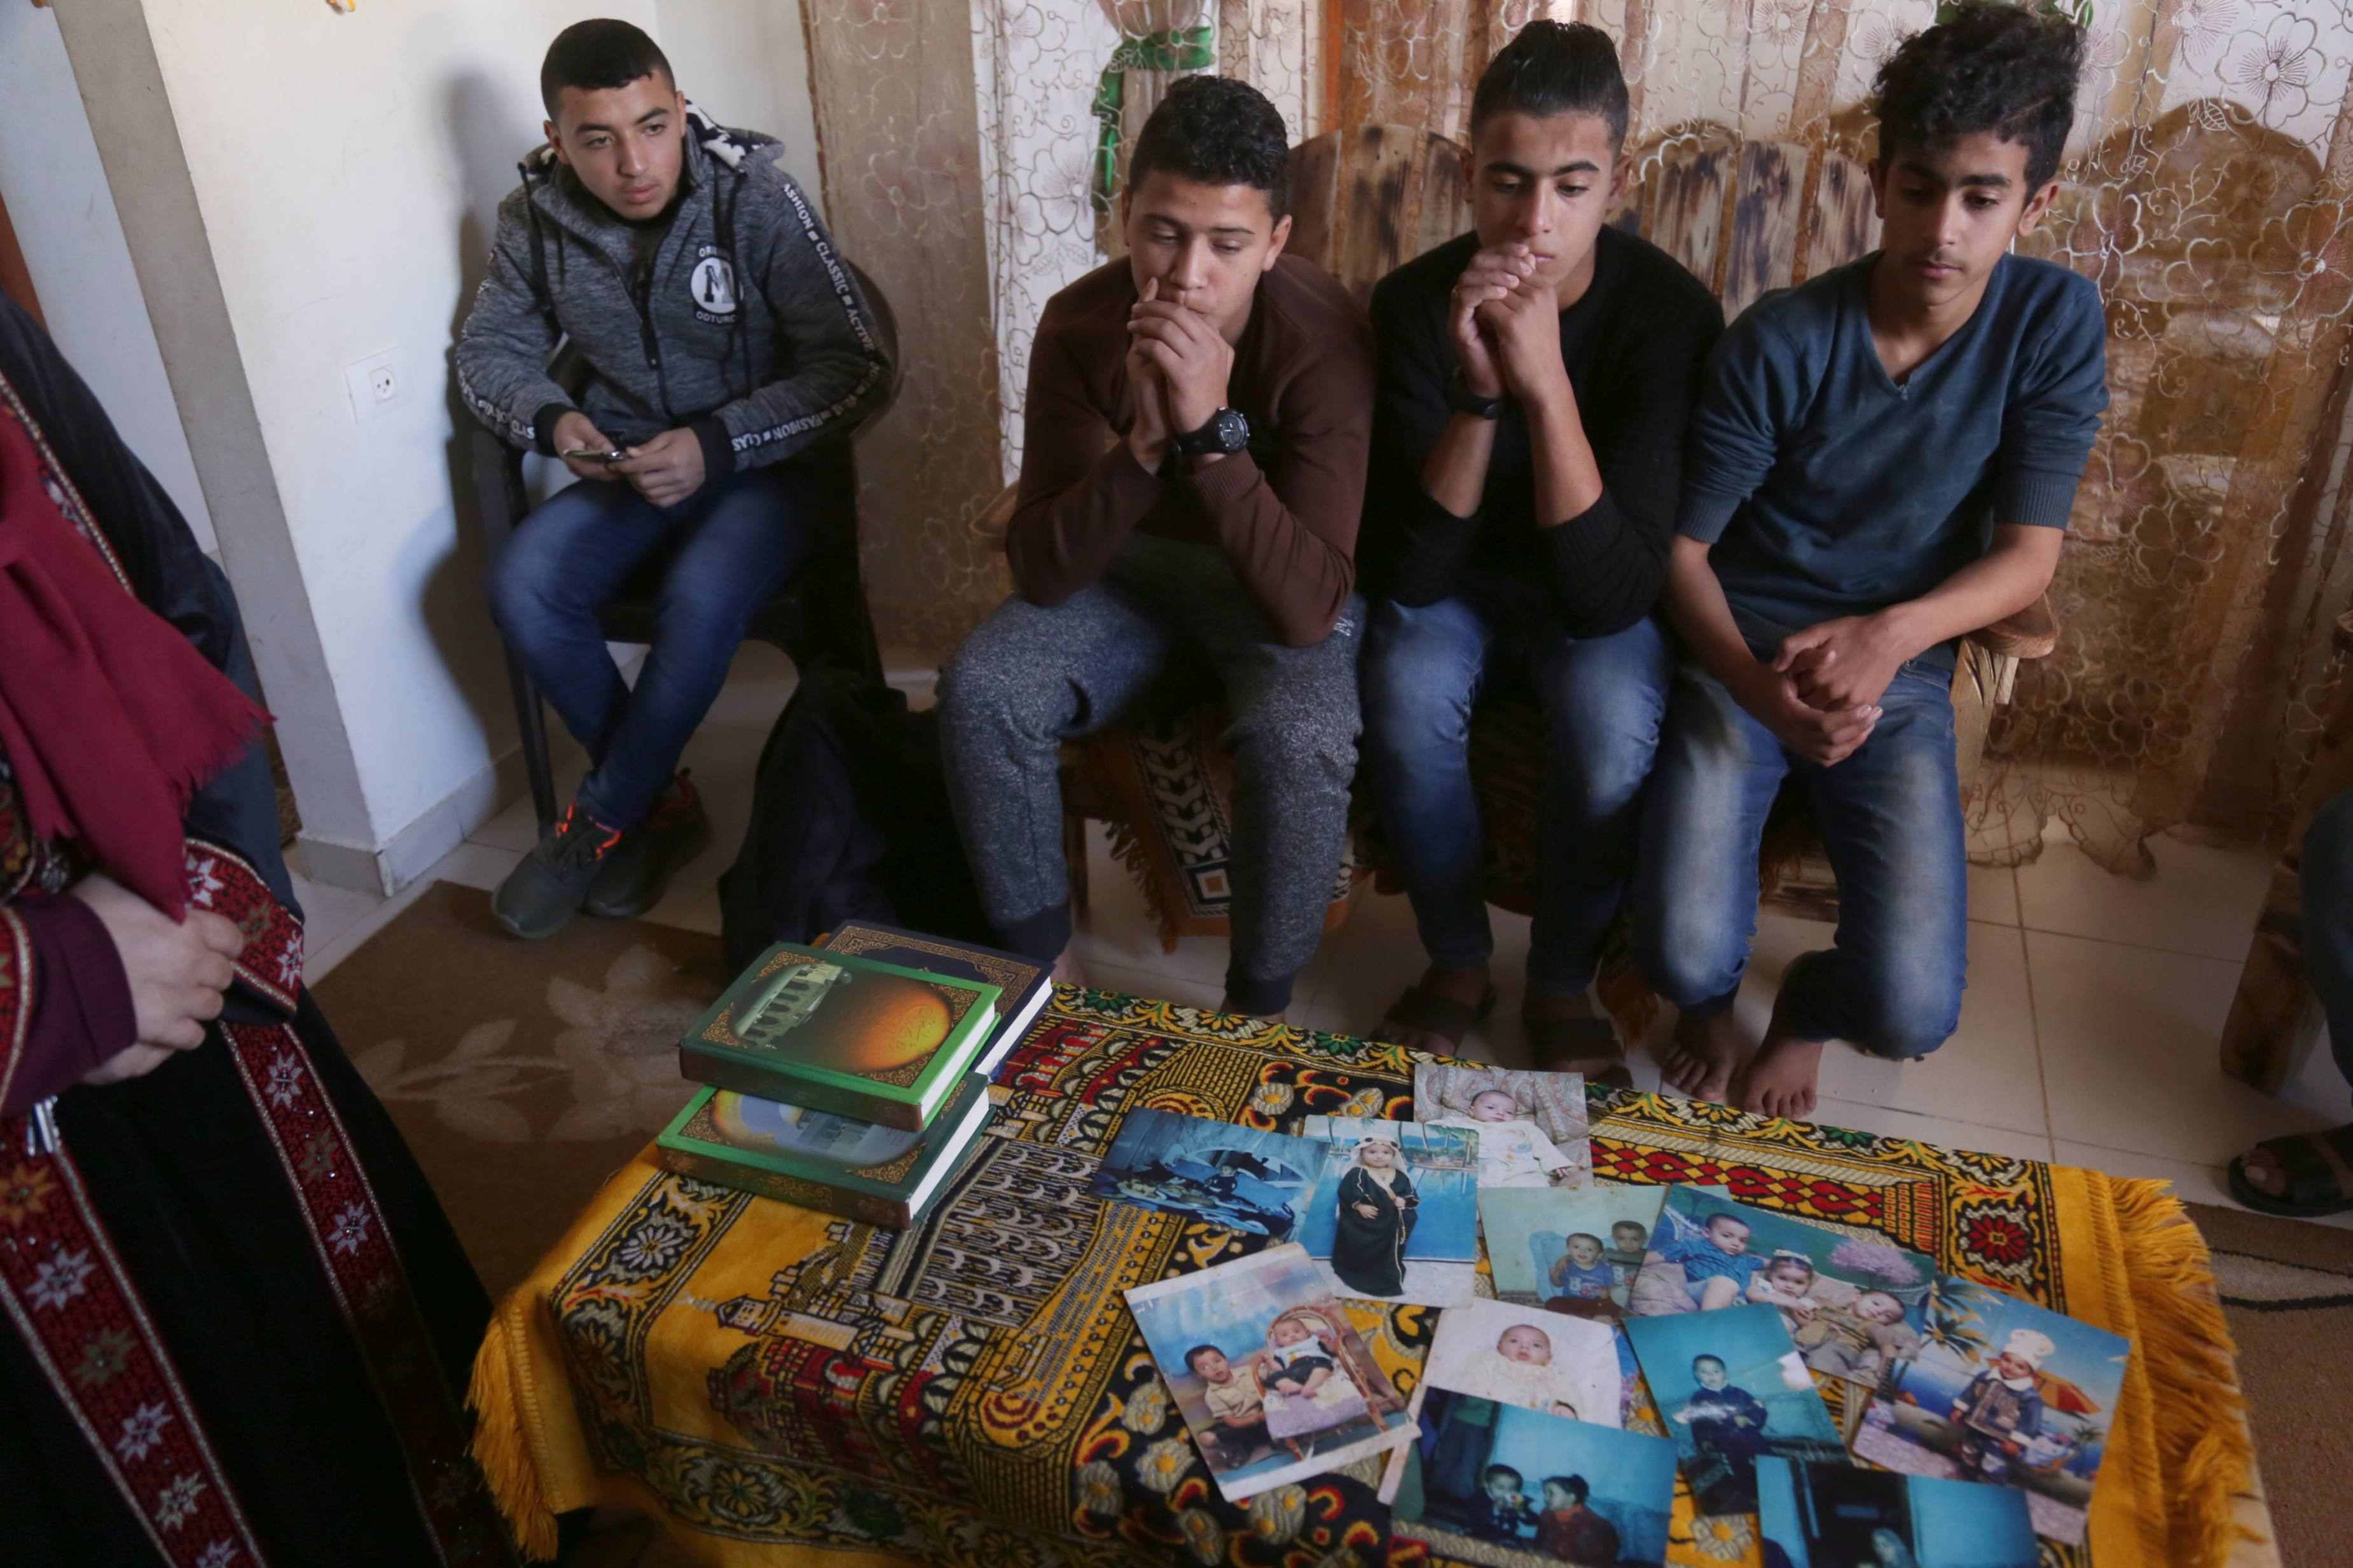 Abdel Fattah Shalabi, 16, Ahmed Abu Ramadan, 15, Rasmi Abu Sabala,16, and Ahmed Abu Qusai, 14, look at childhood pictures of Hassan (MEE/Samar Abu Elouf)